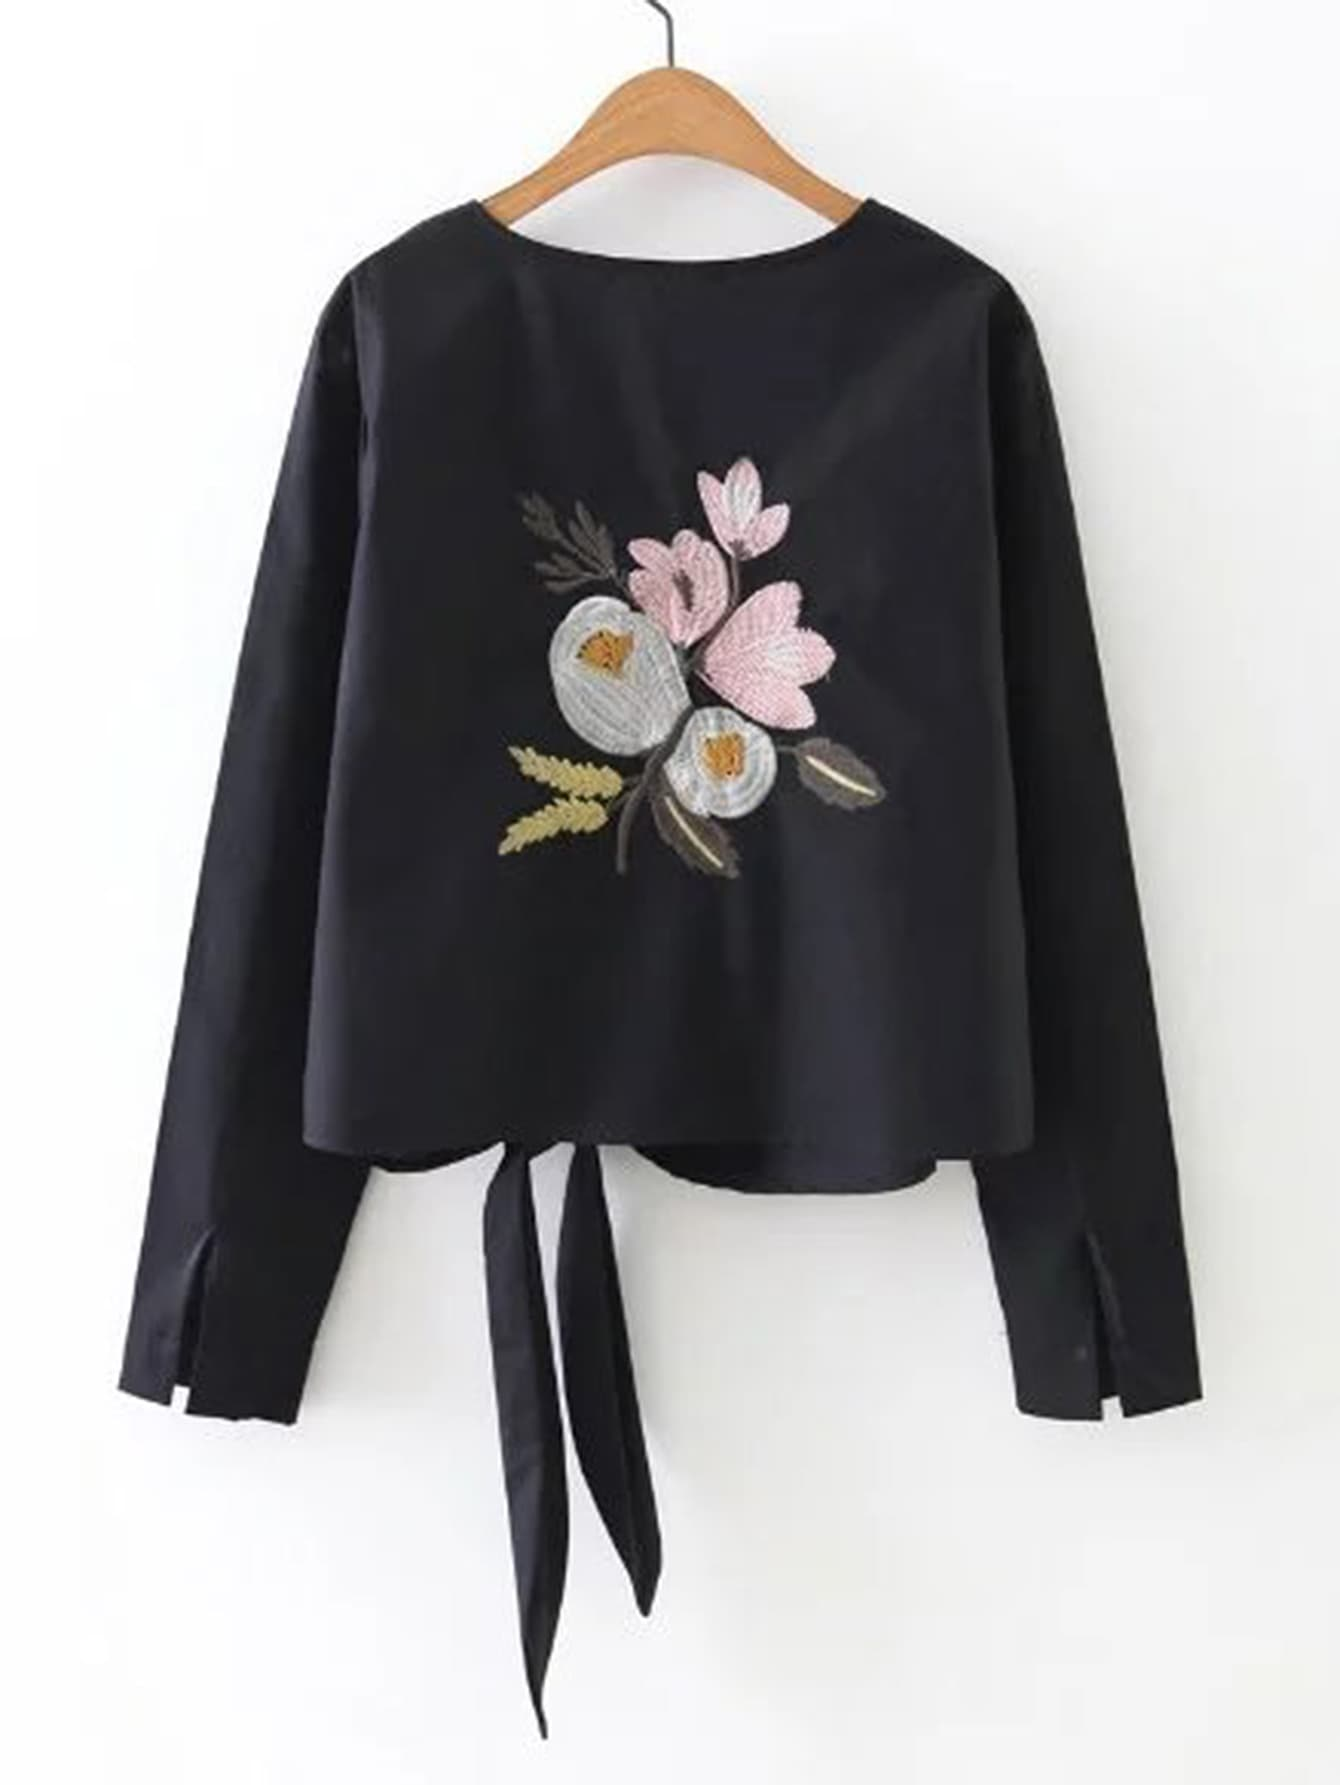 Knot Front Flower Embroidery Top embroidery applique knot back fitted